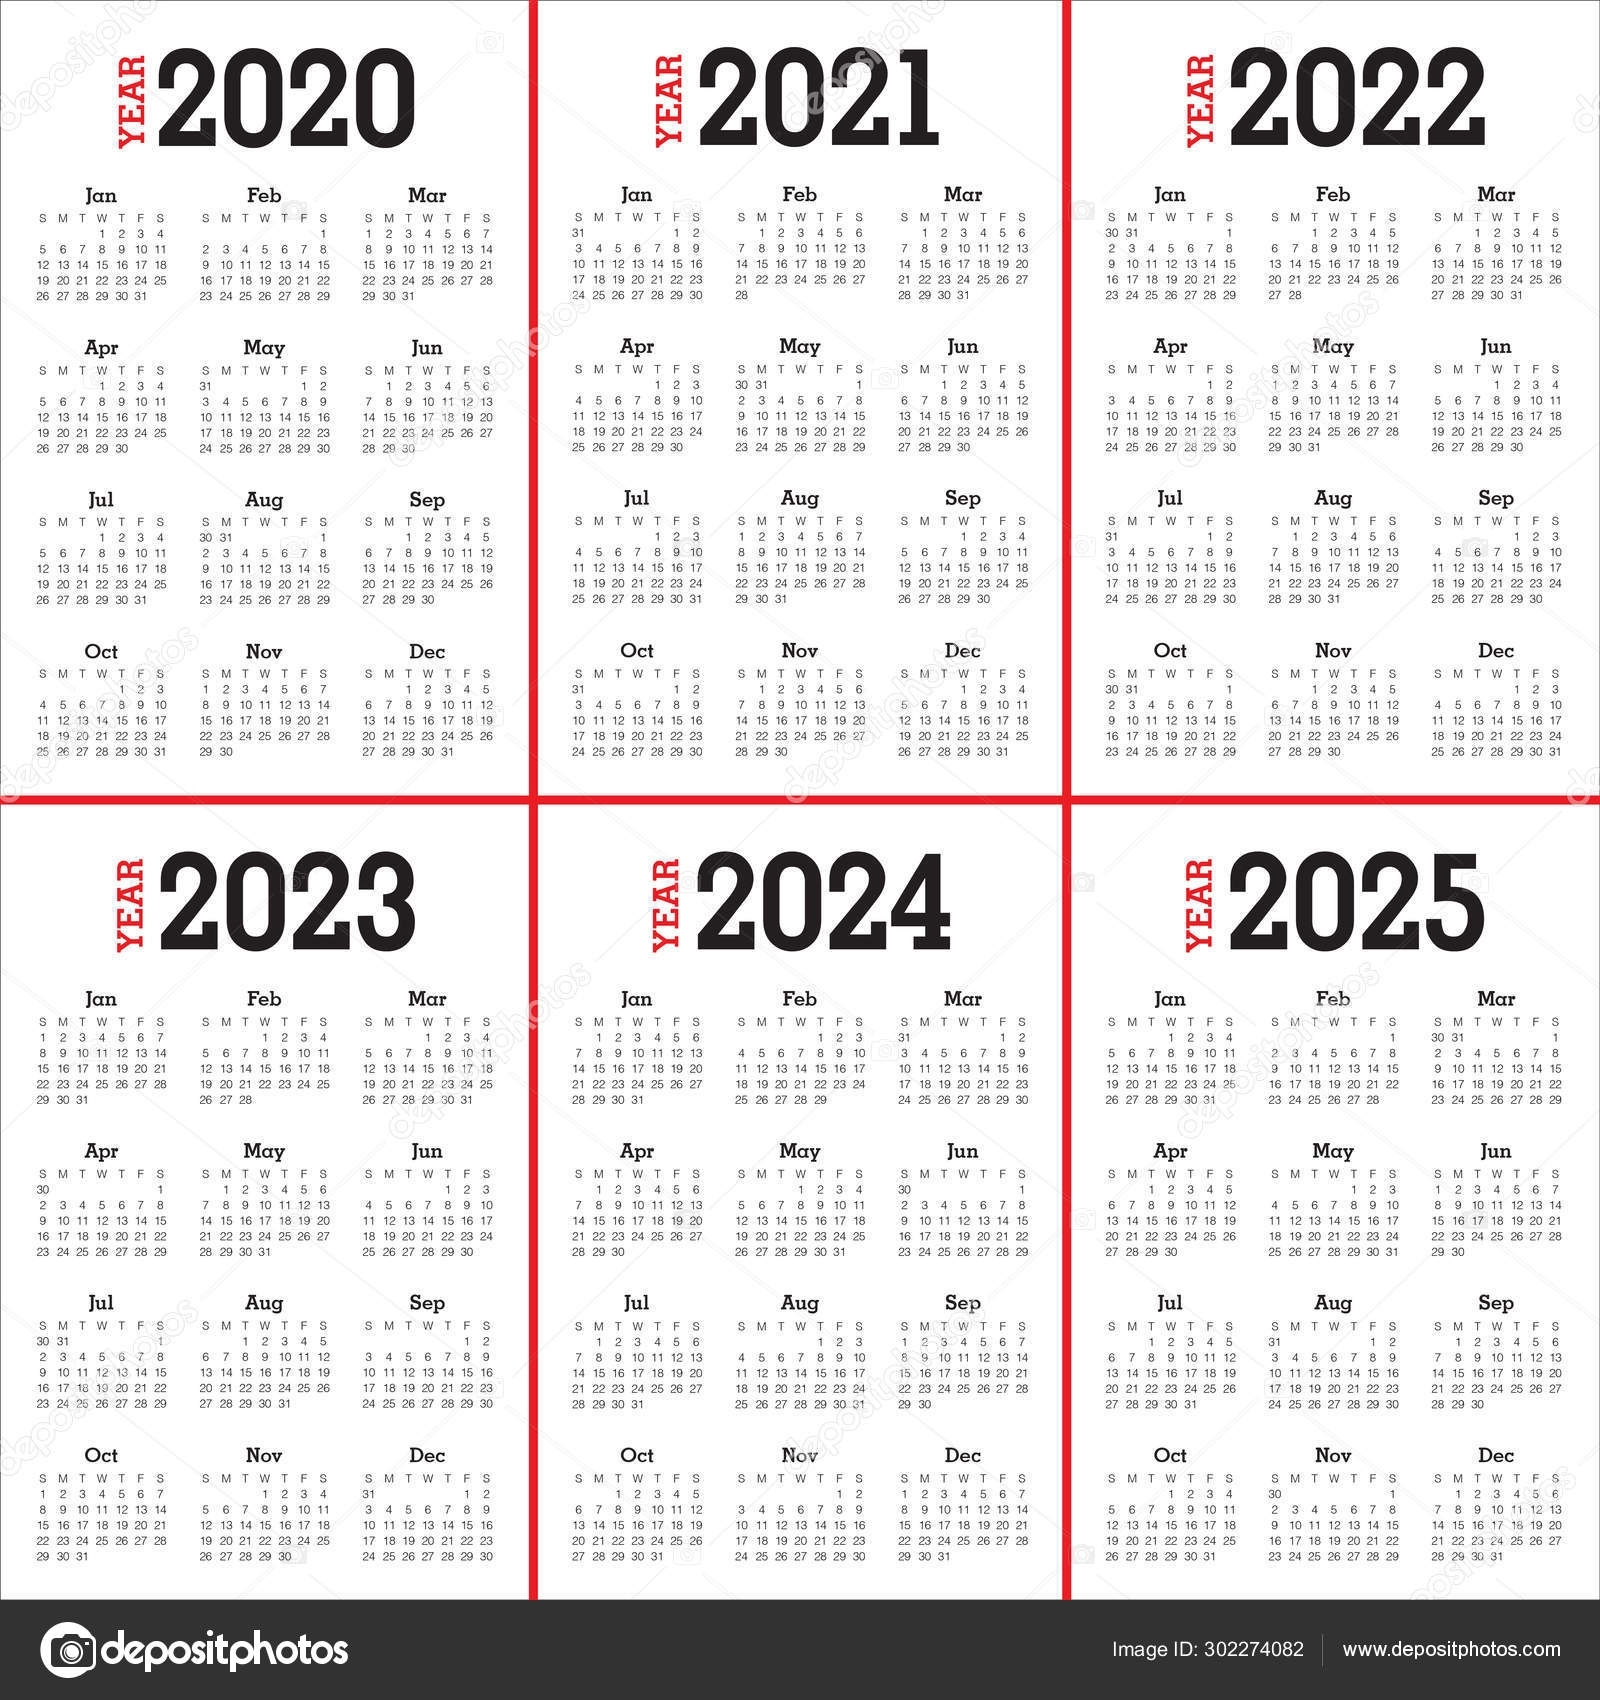 Year 2020 2021 2022 2023 2024 2025 Calendar Design — Stock